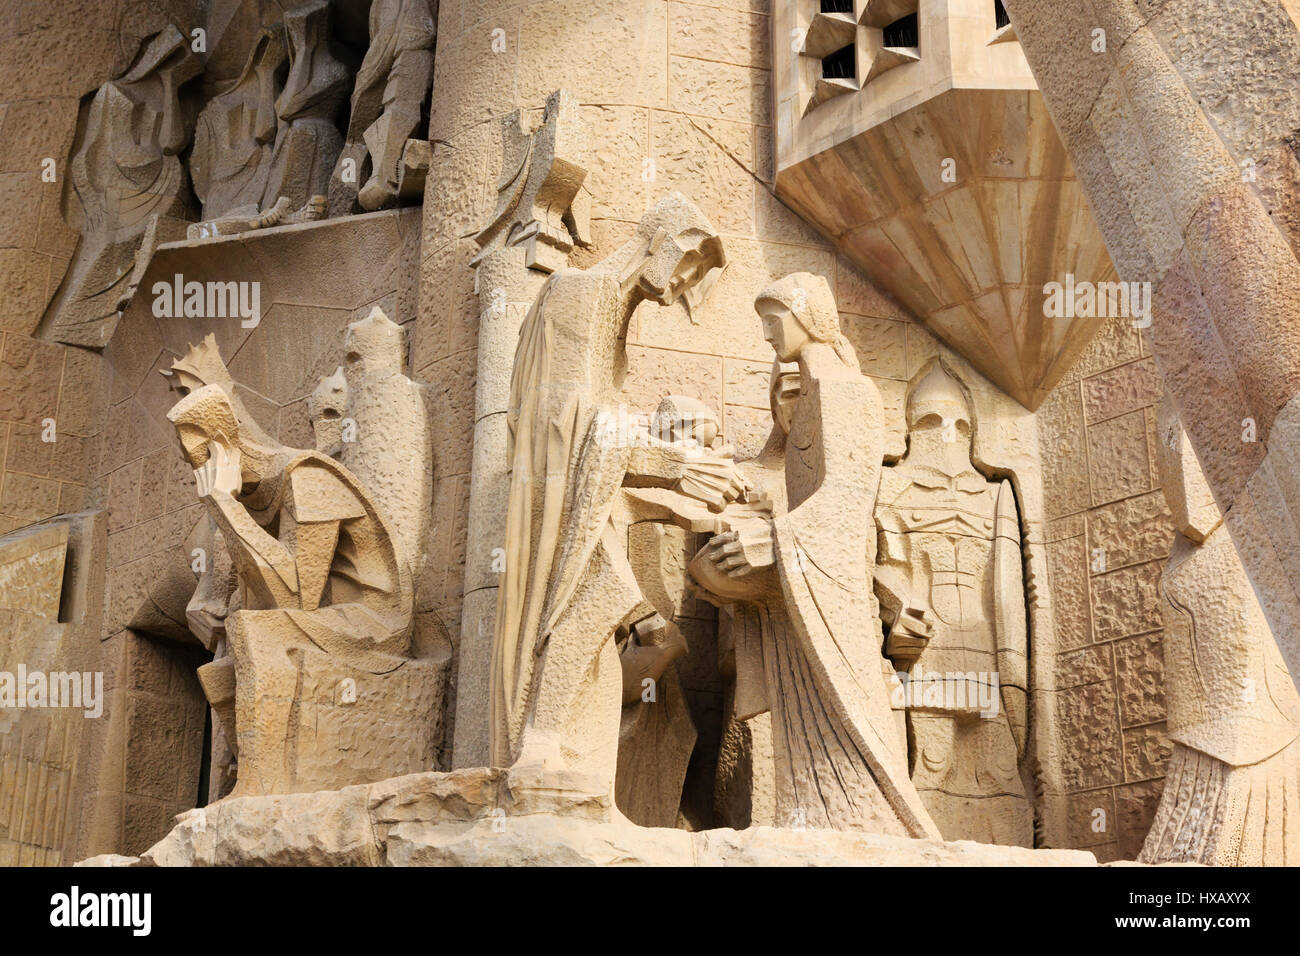 detail-from-the-passion-facade-of-gaudis